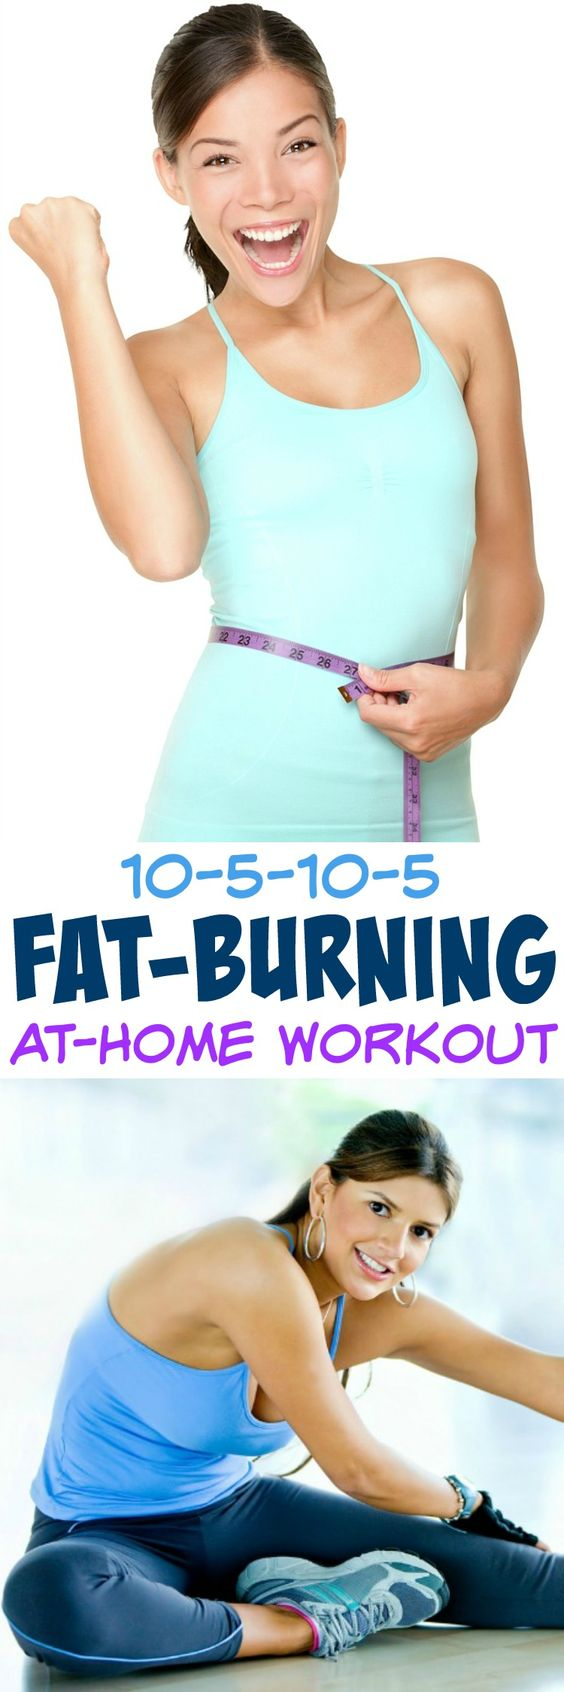 10 5 10 5 Fat Burning At Home Workout Home Living Rooms And Burn Calories